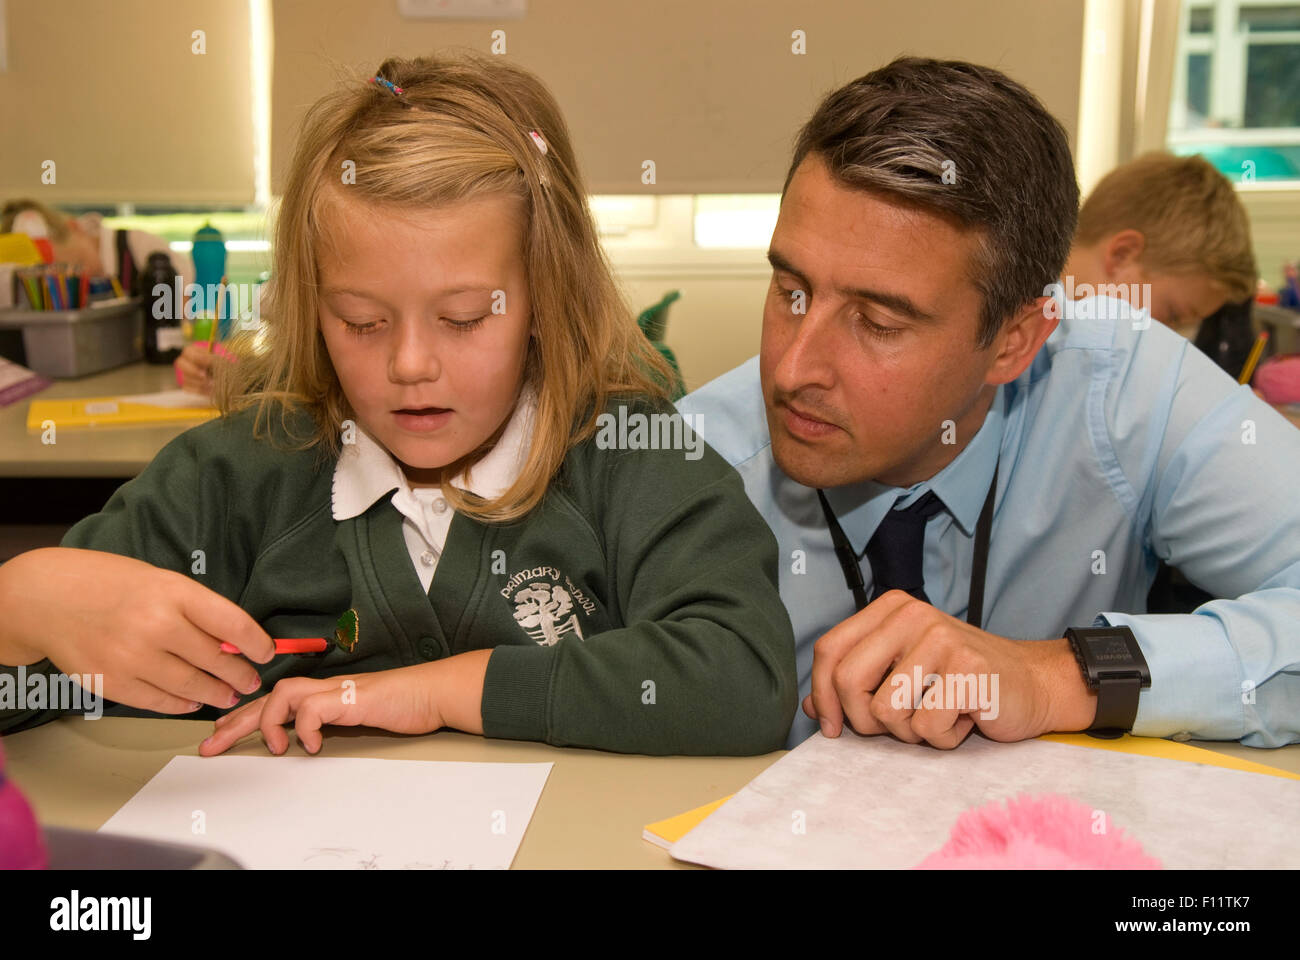 Primary school teacher assisting pupil in classroom, Midlands, UK. - Stock Image